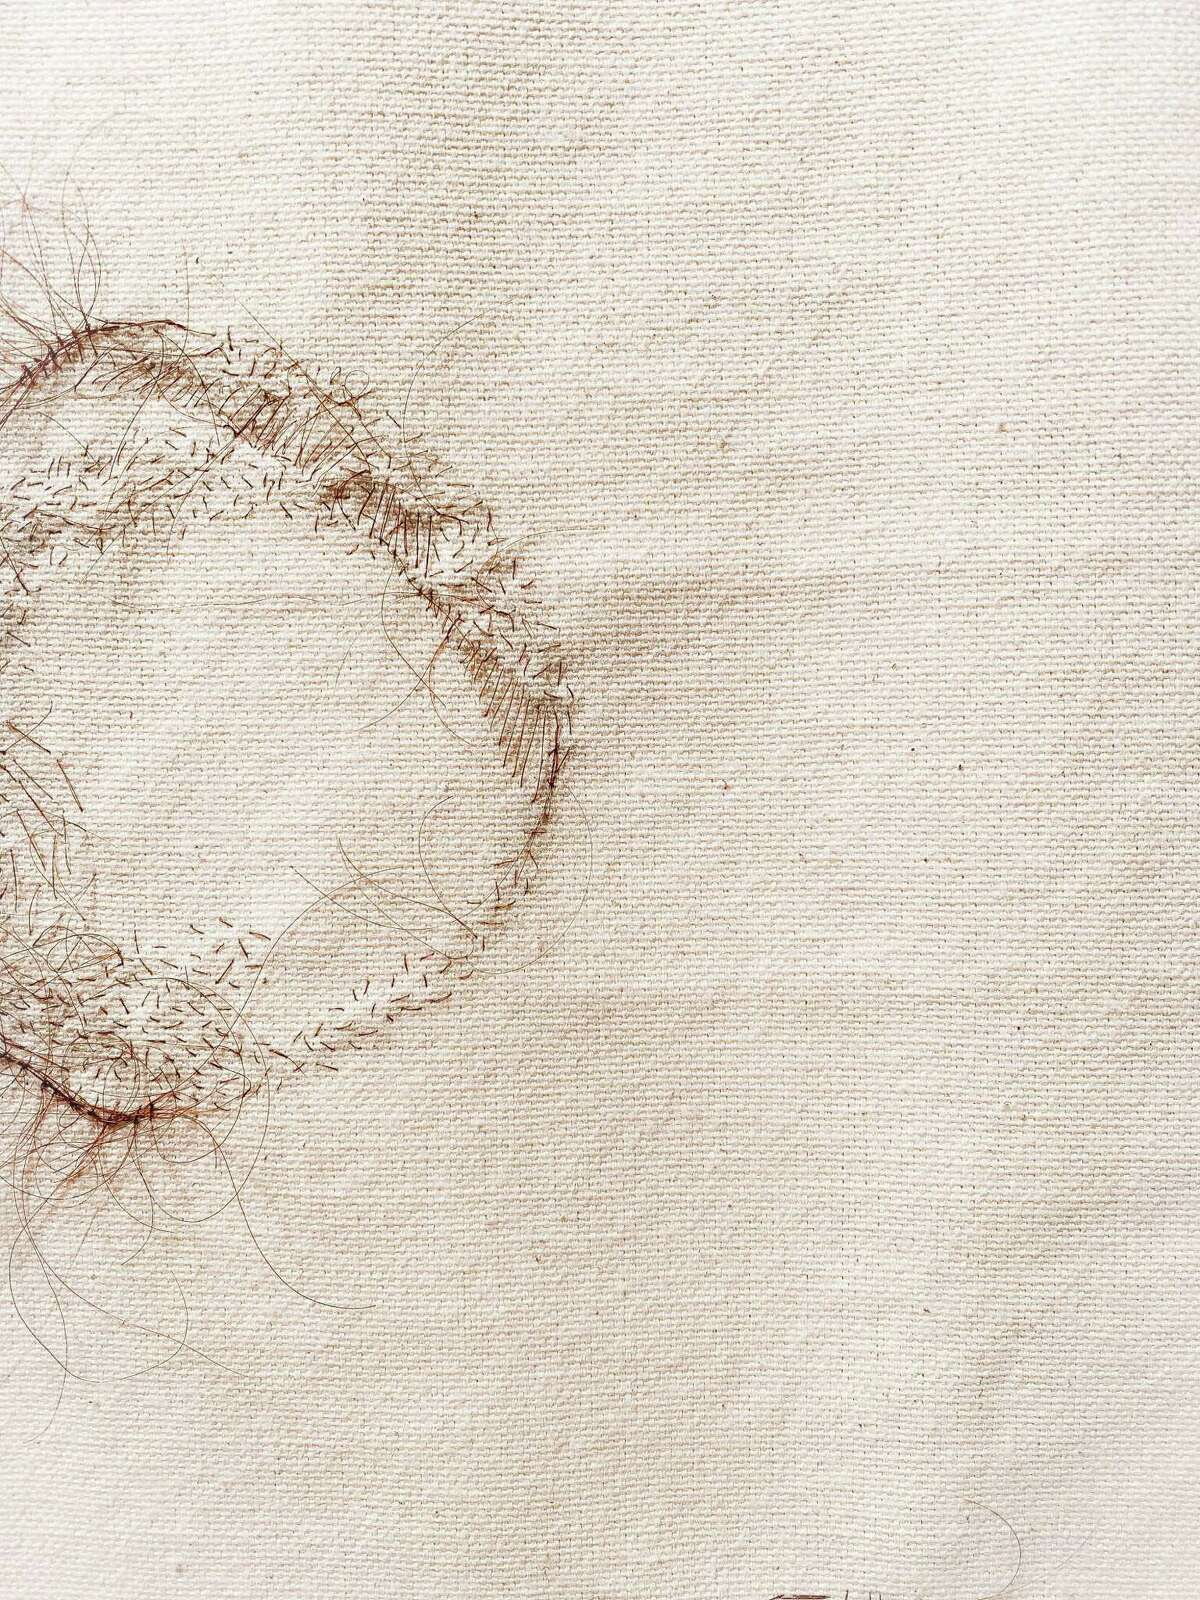 """Rosemary Meza-DesPlas' """"In Spite of Ourselves,"""" which is made from hand-sewn human hair on unprimed canvas, is part of the """"CuerposUnidos"""" exhibit at Clamp Light Artist Studios & Gallery."""